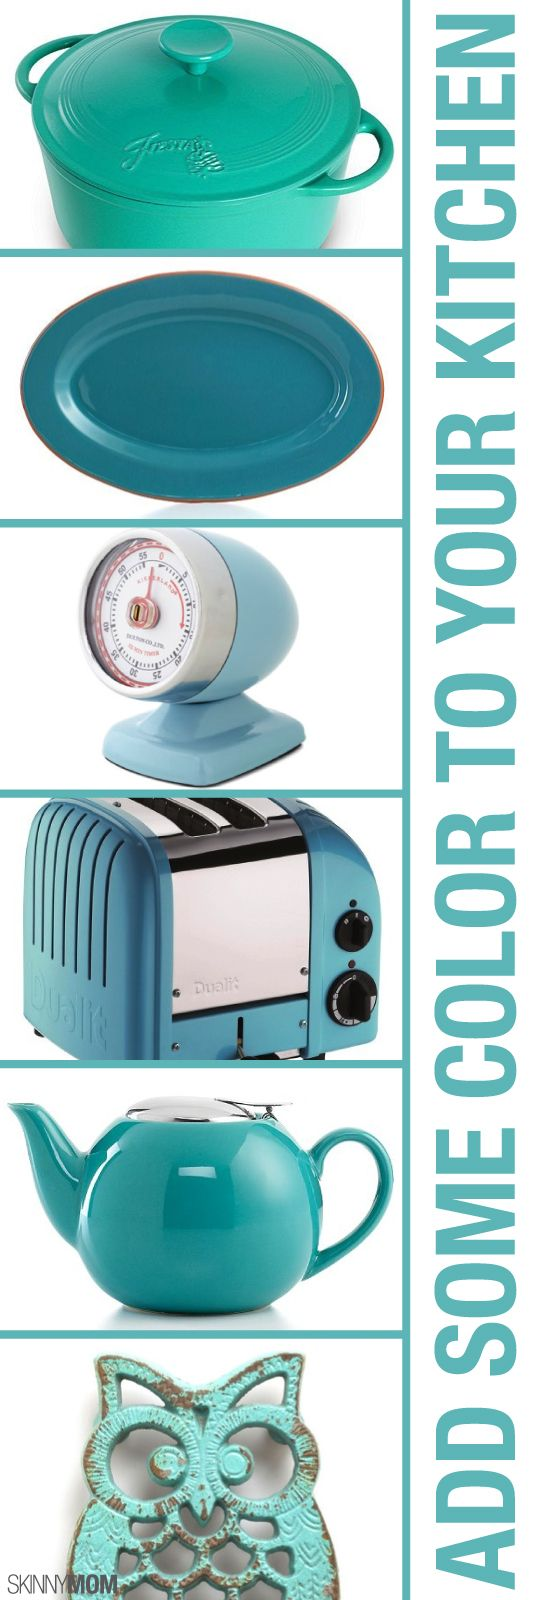 Brighten Your Blues With These Turquoise Kitchen Accessories!